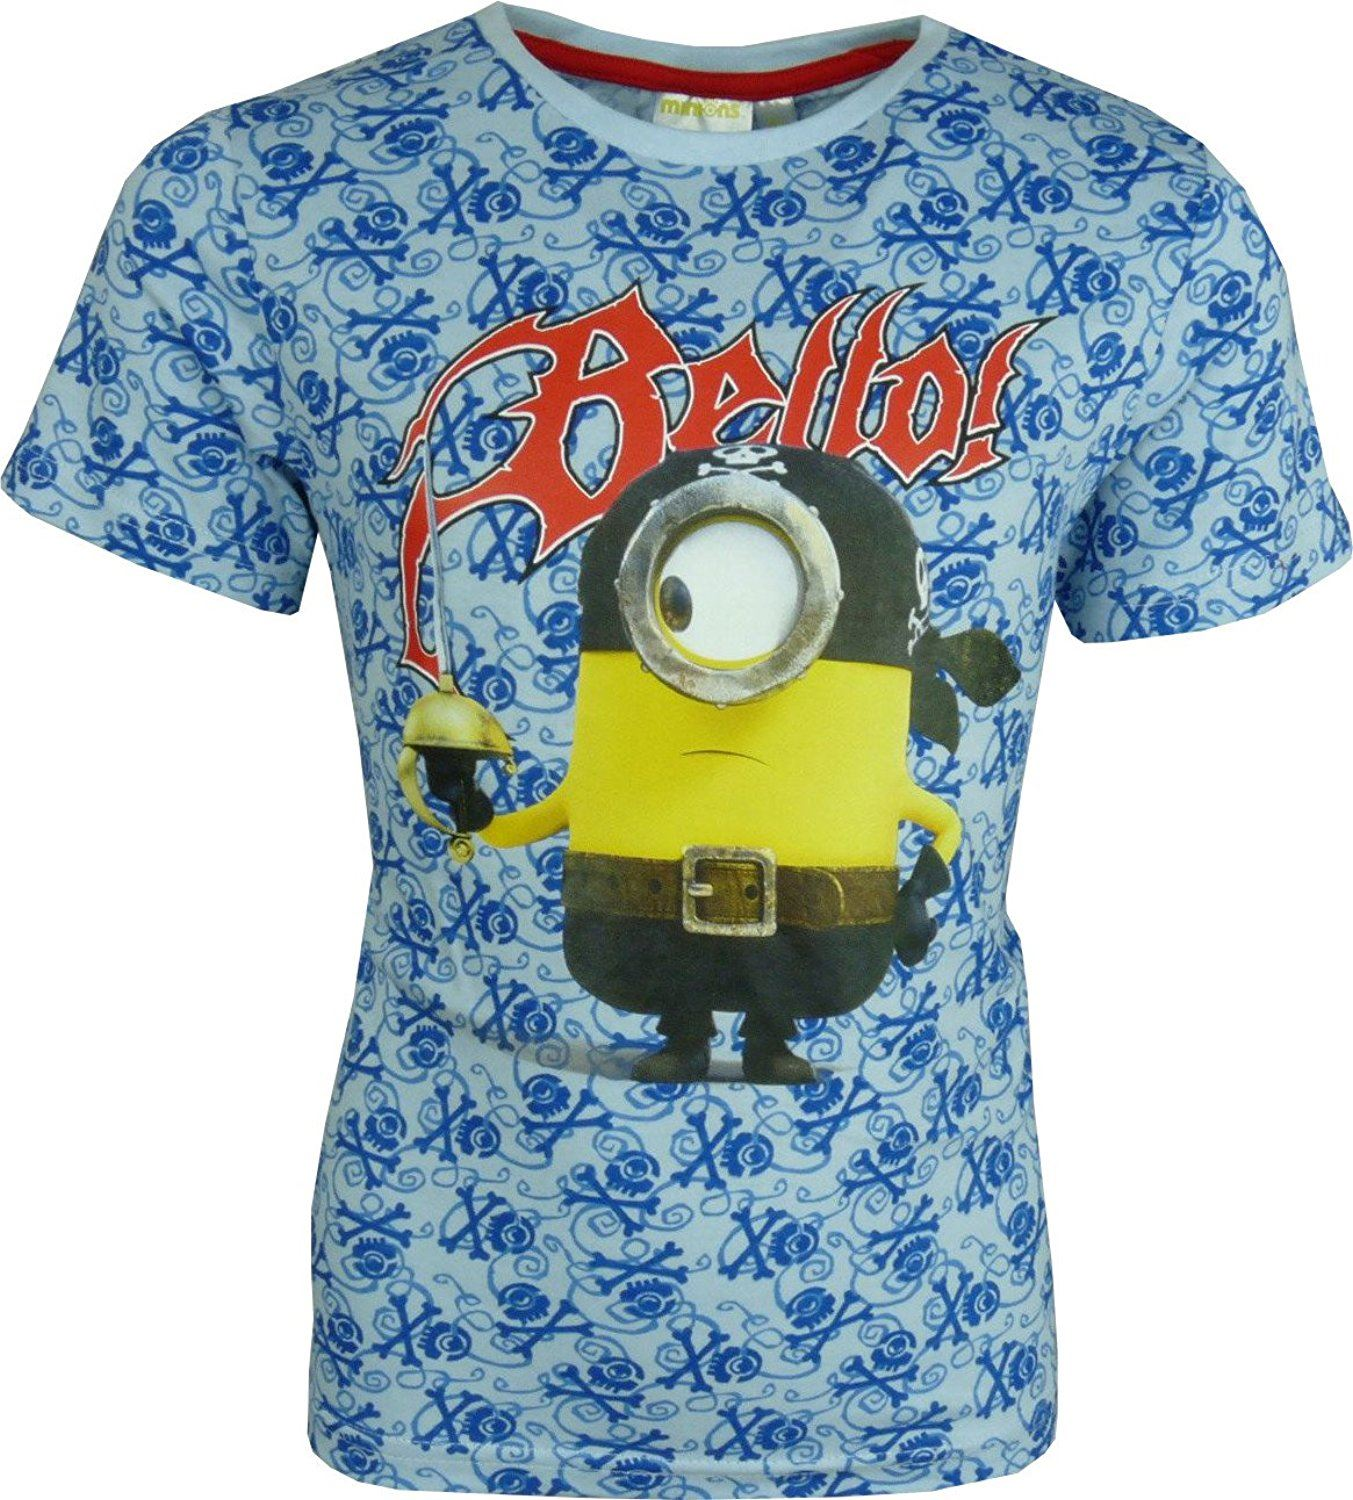 Garcons-Disney-Cars-Mickey-Mouse-Planes-Minions-Scooby-Doo-T-shirt